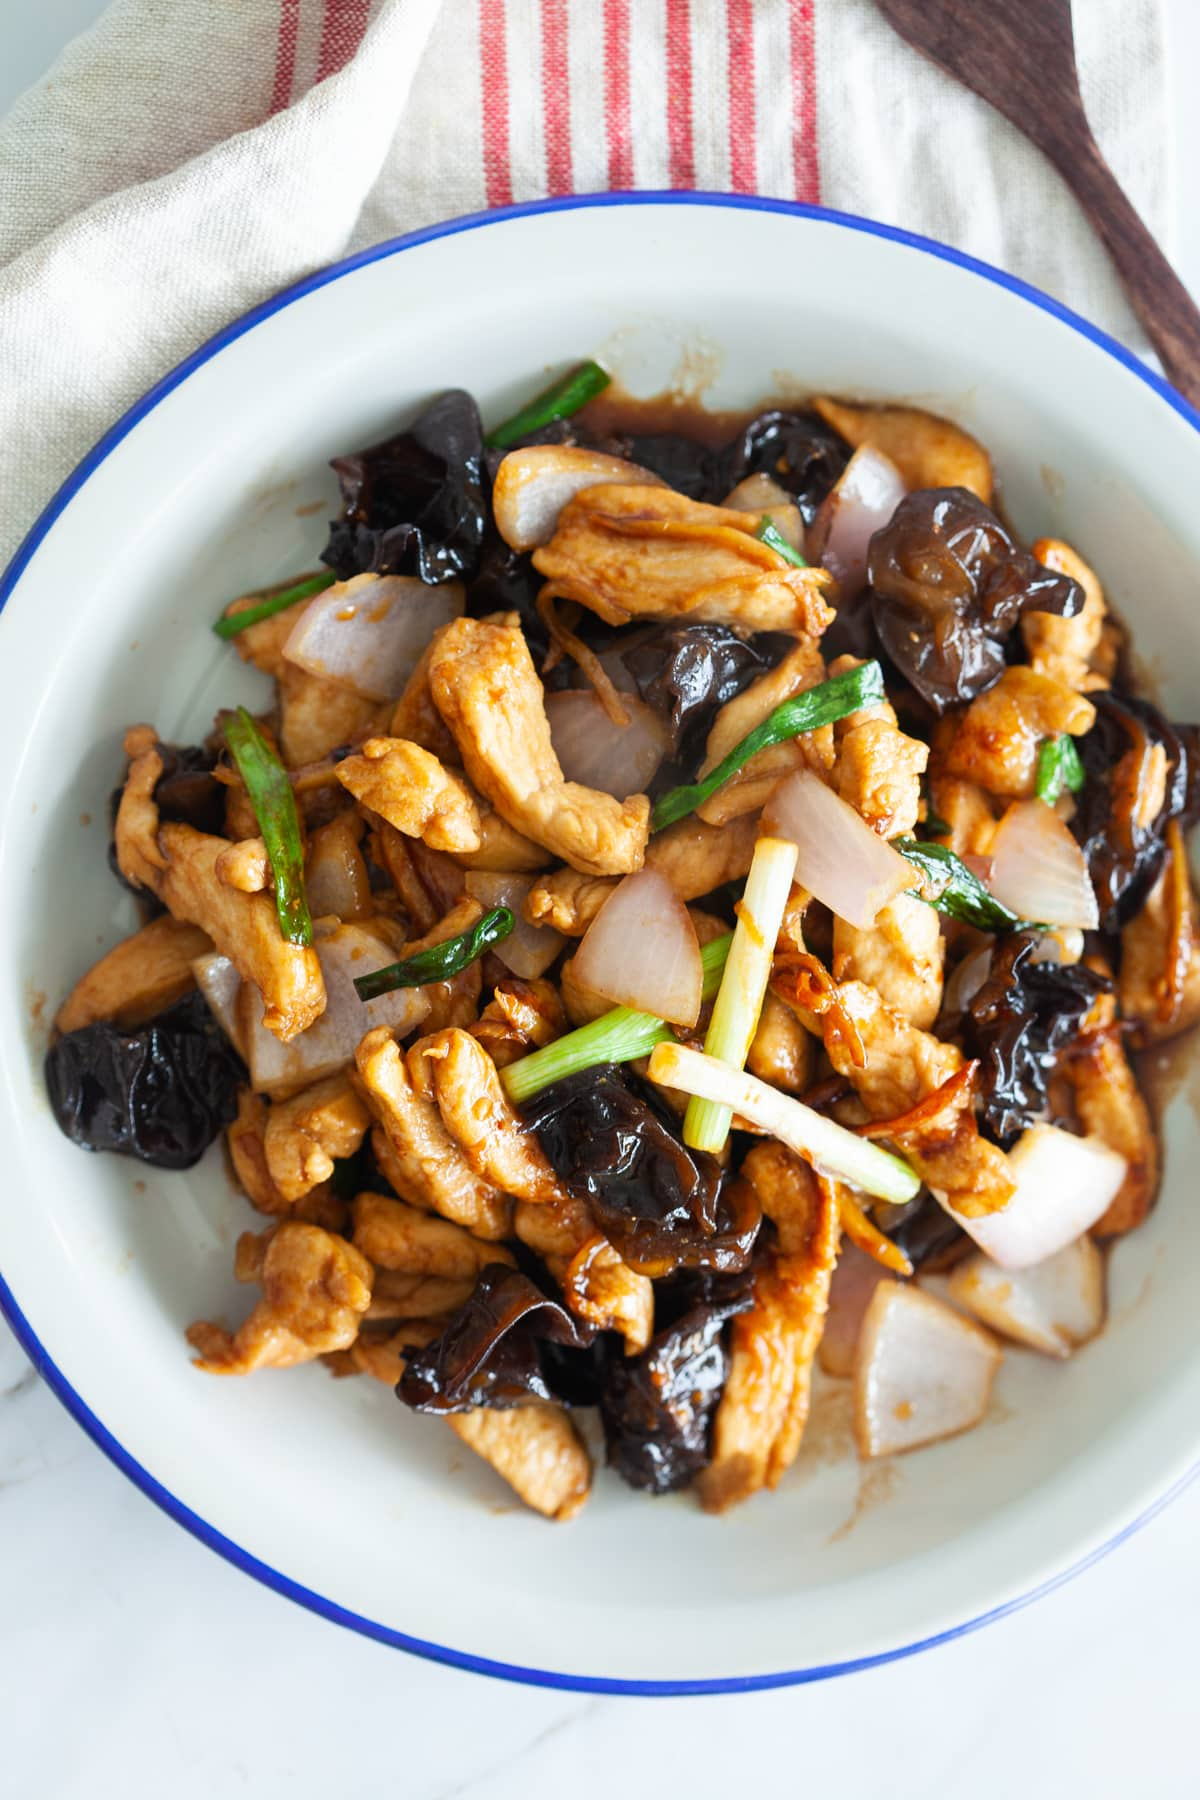 Ginger and black fungus chicken.